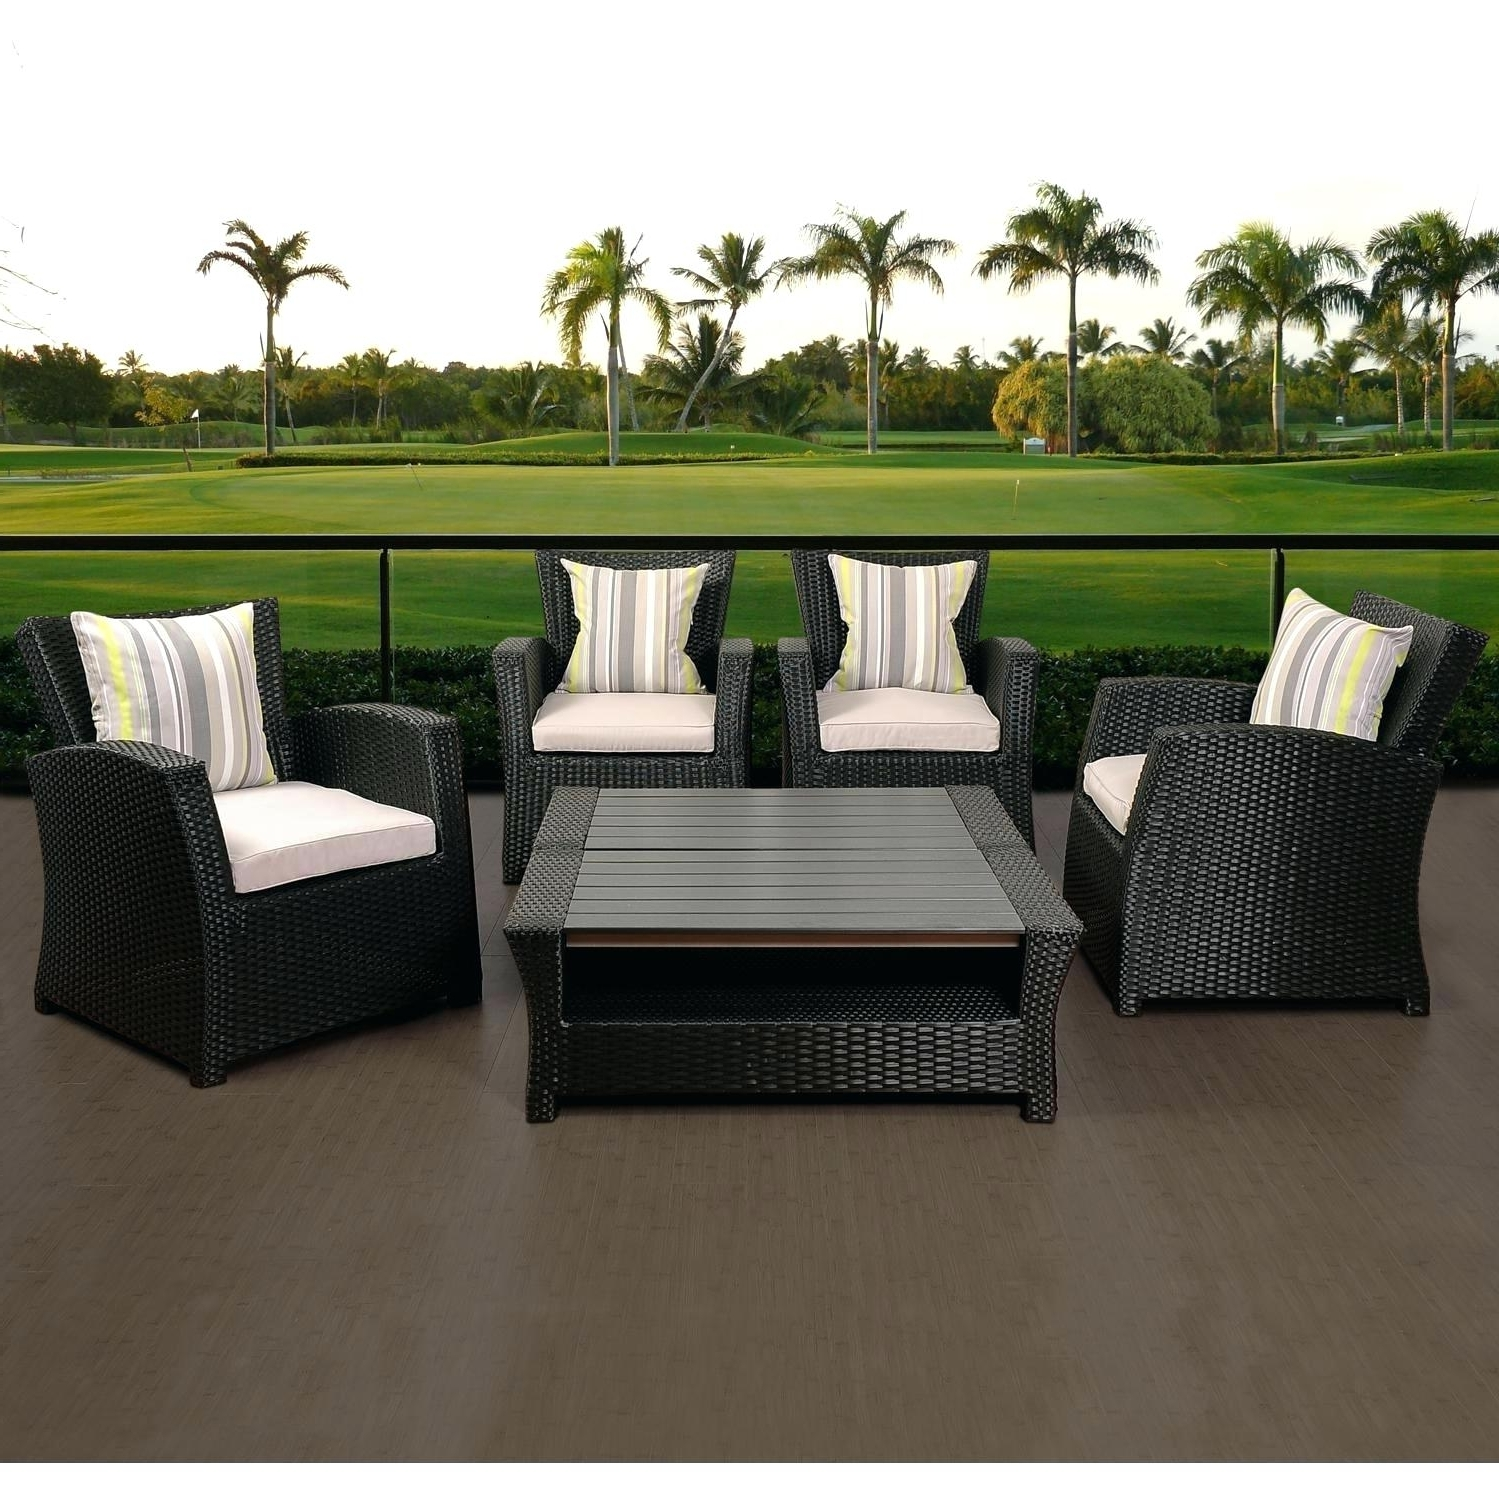 Conversation Patio Sets With Outdoor Sectionals With 2017 Conversation Sets Patio Set With Fire Pit Table Outdoor Sectionals (View 5 of 15)